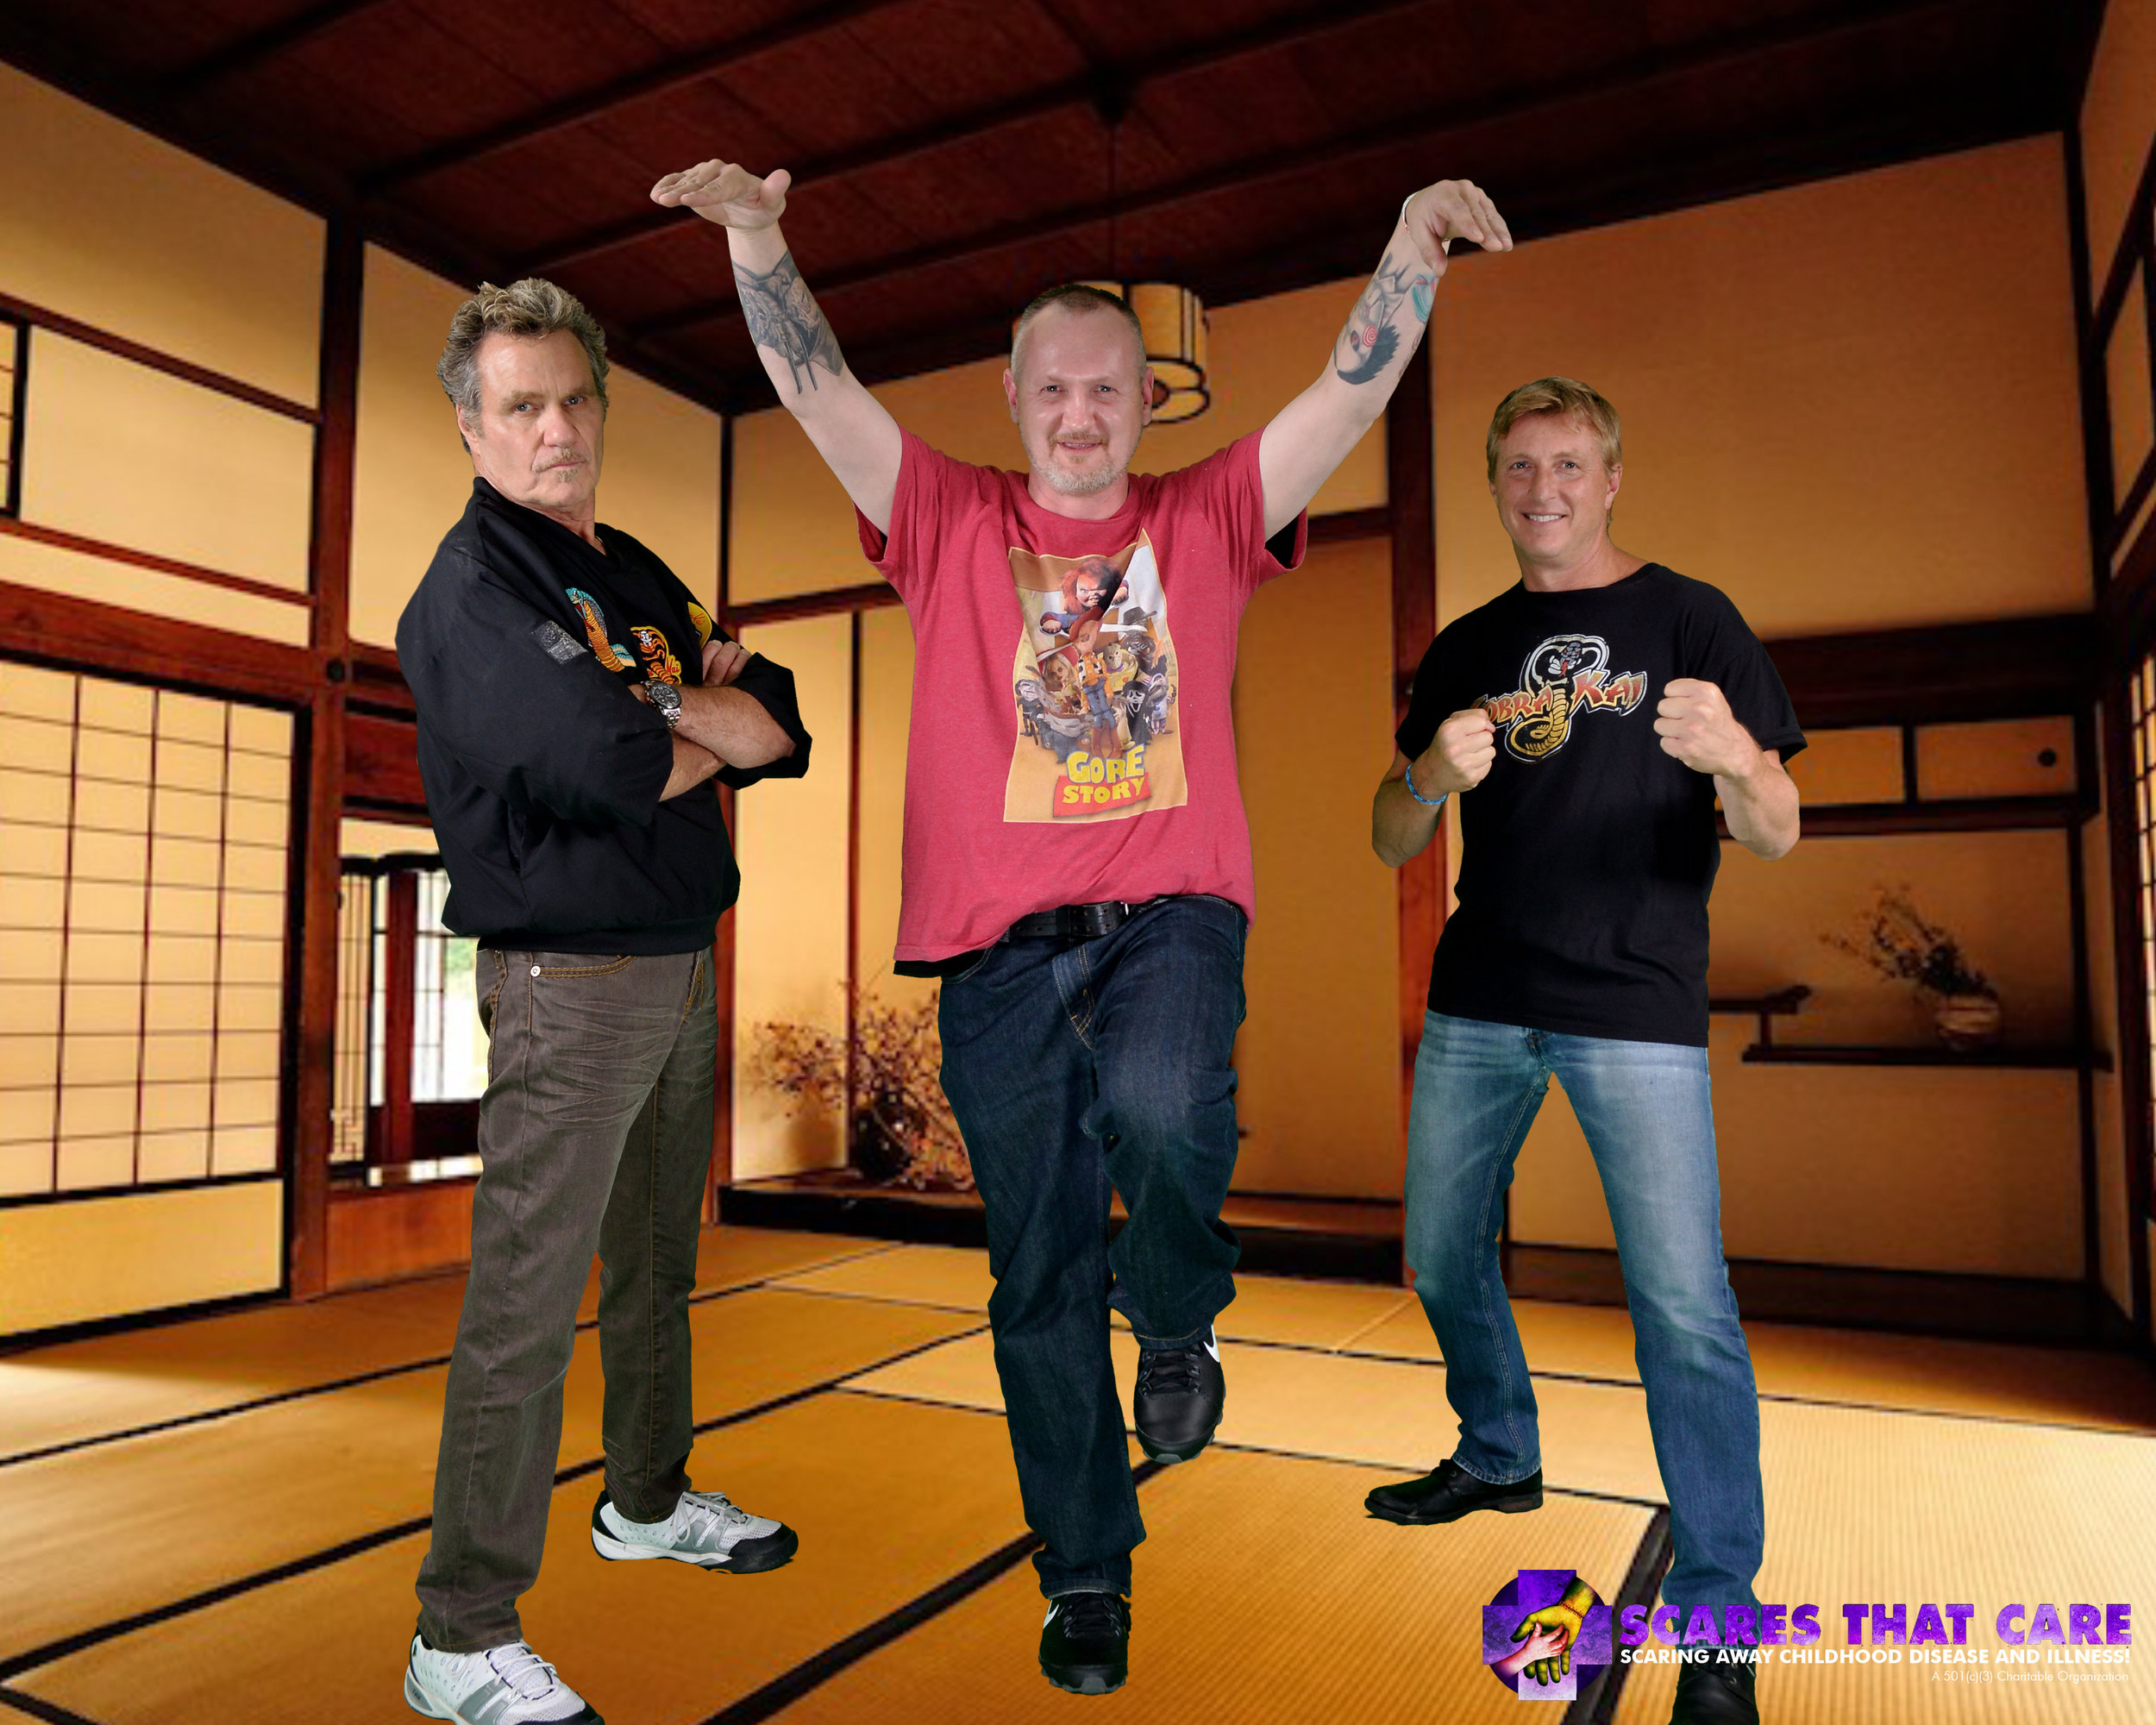 Karate-Kid-Scares-That-Care